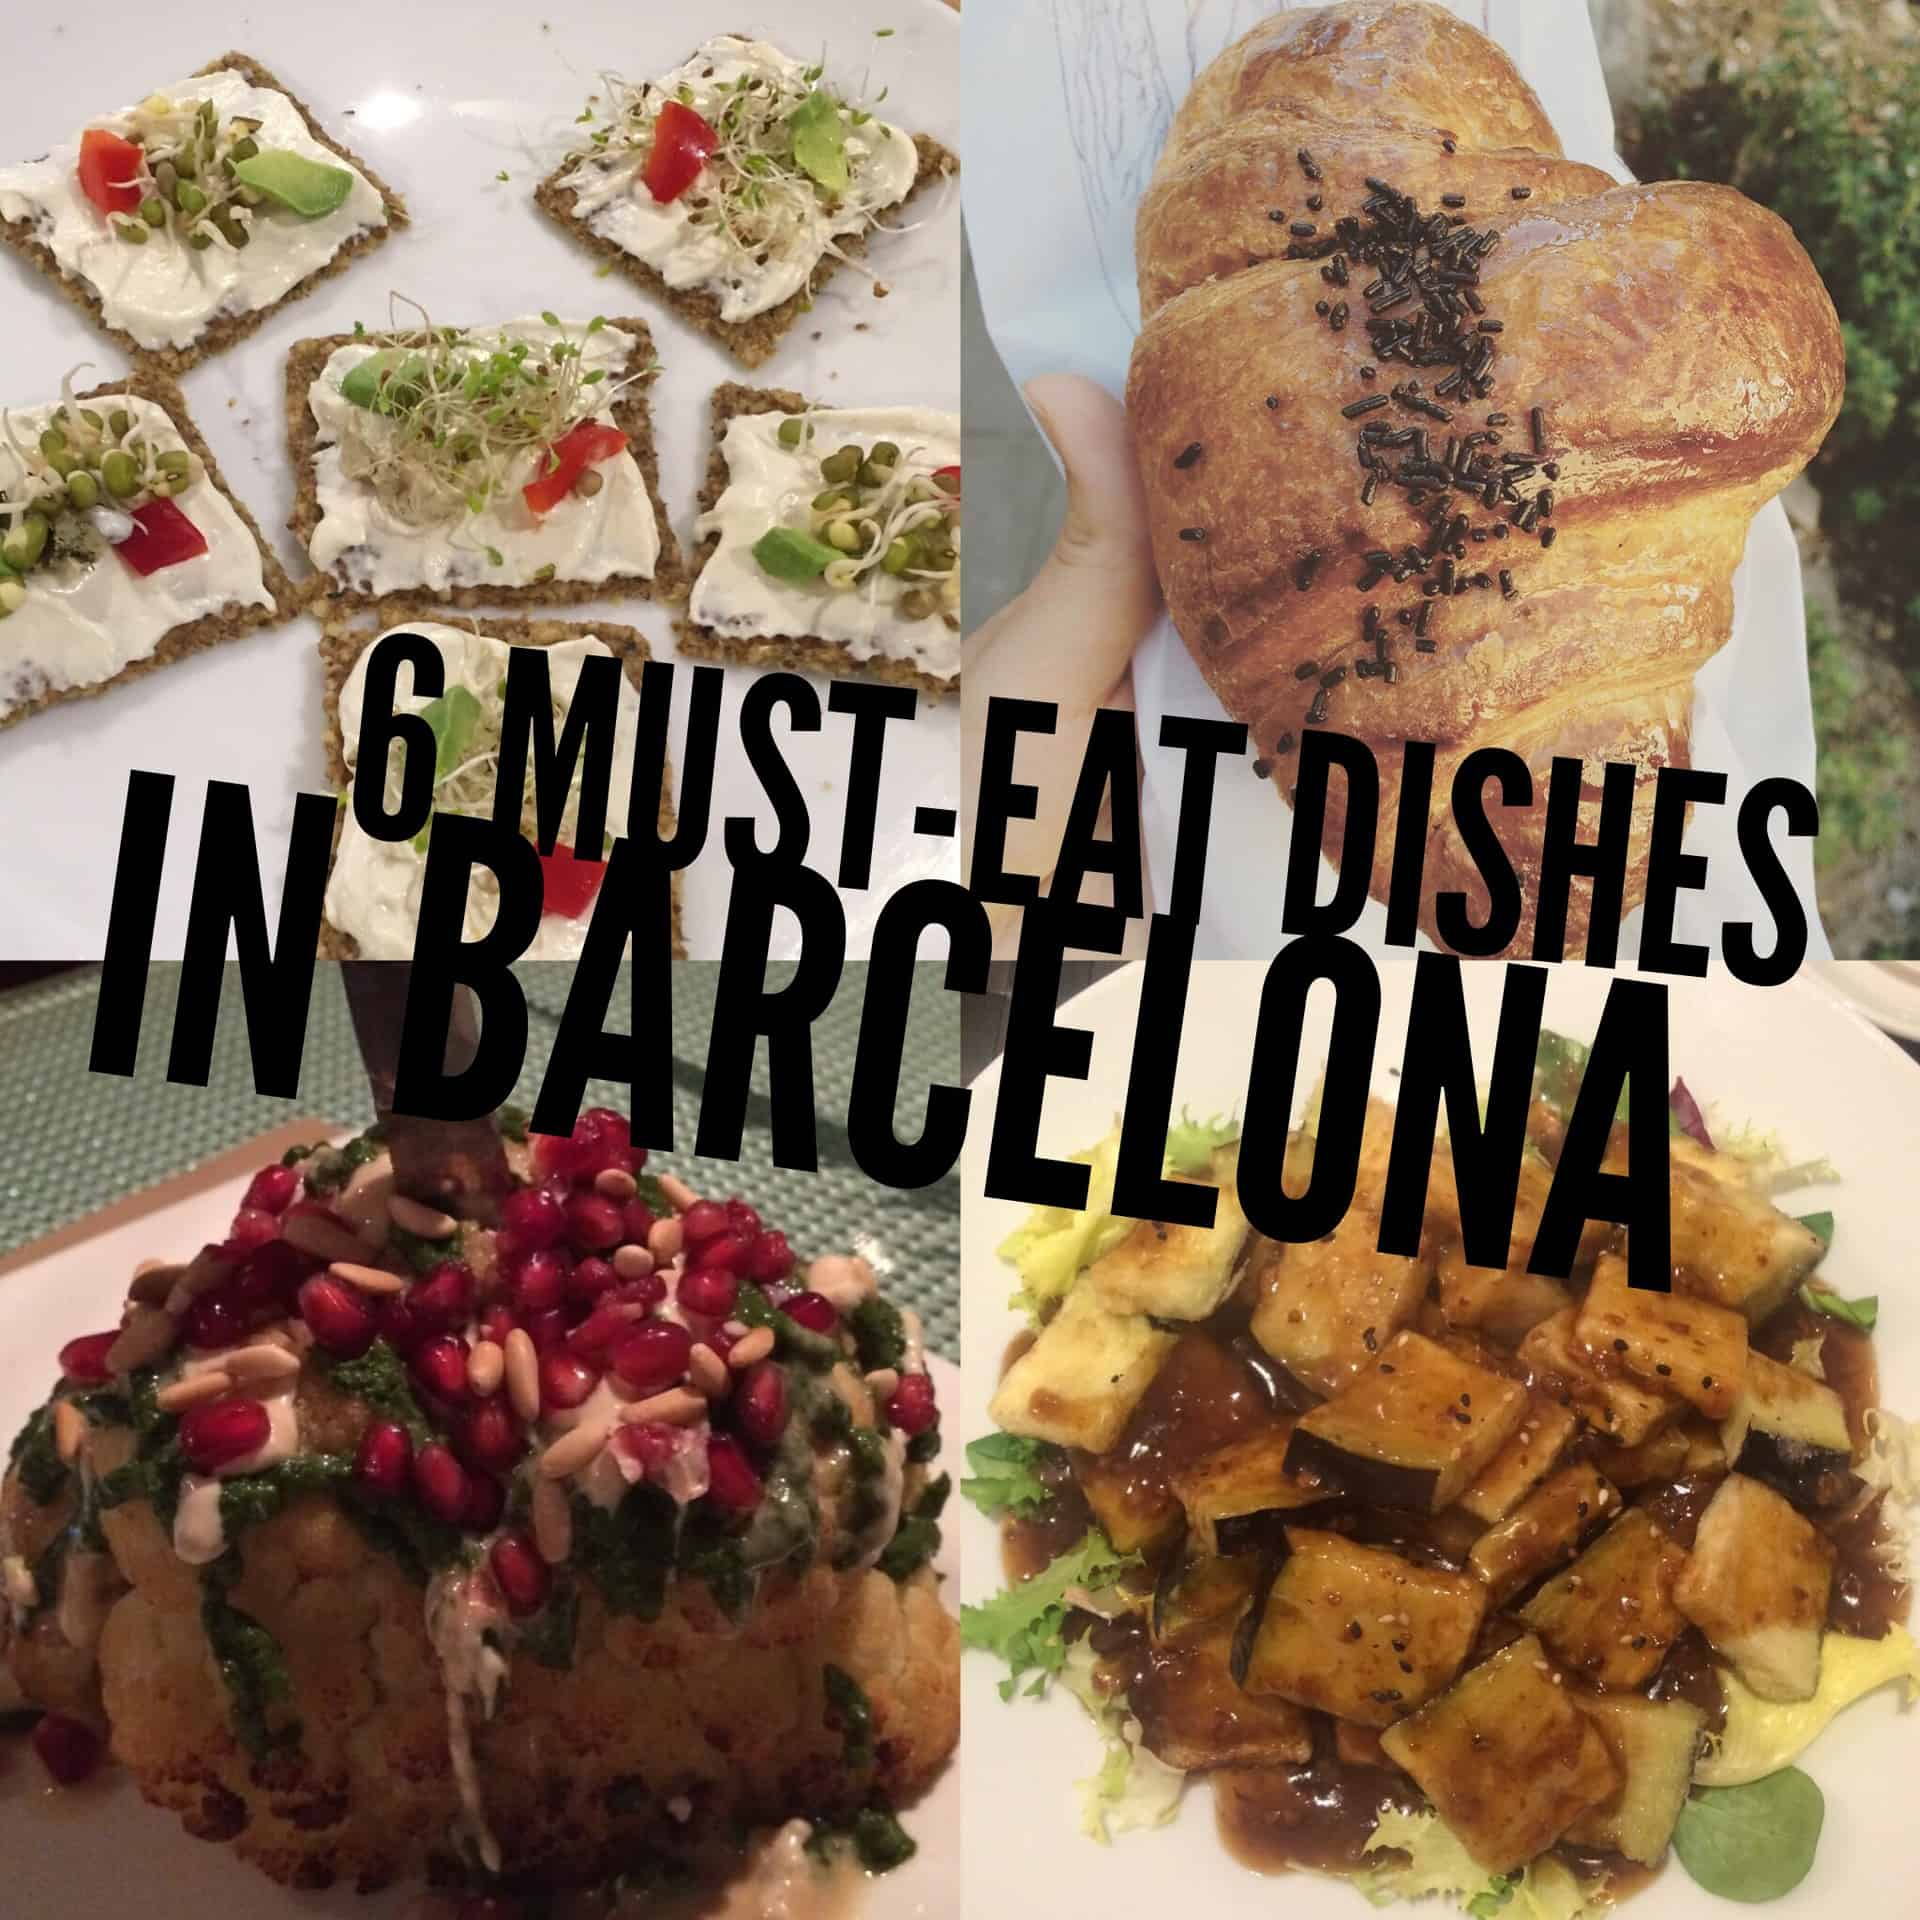 6 must-eat vegan dishes in Barcelona